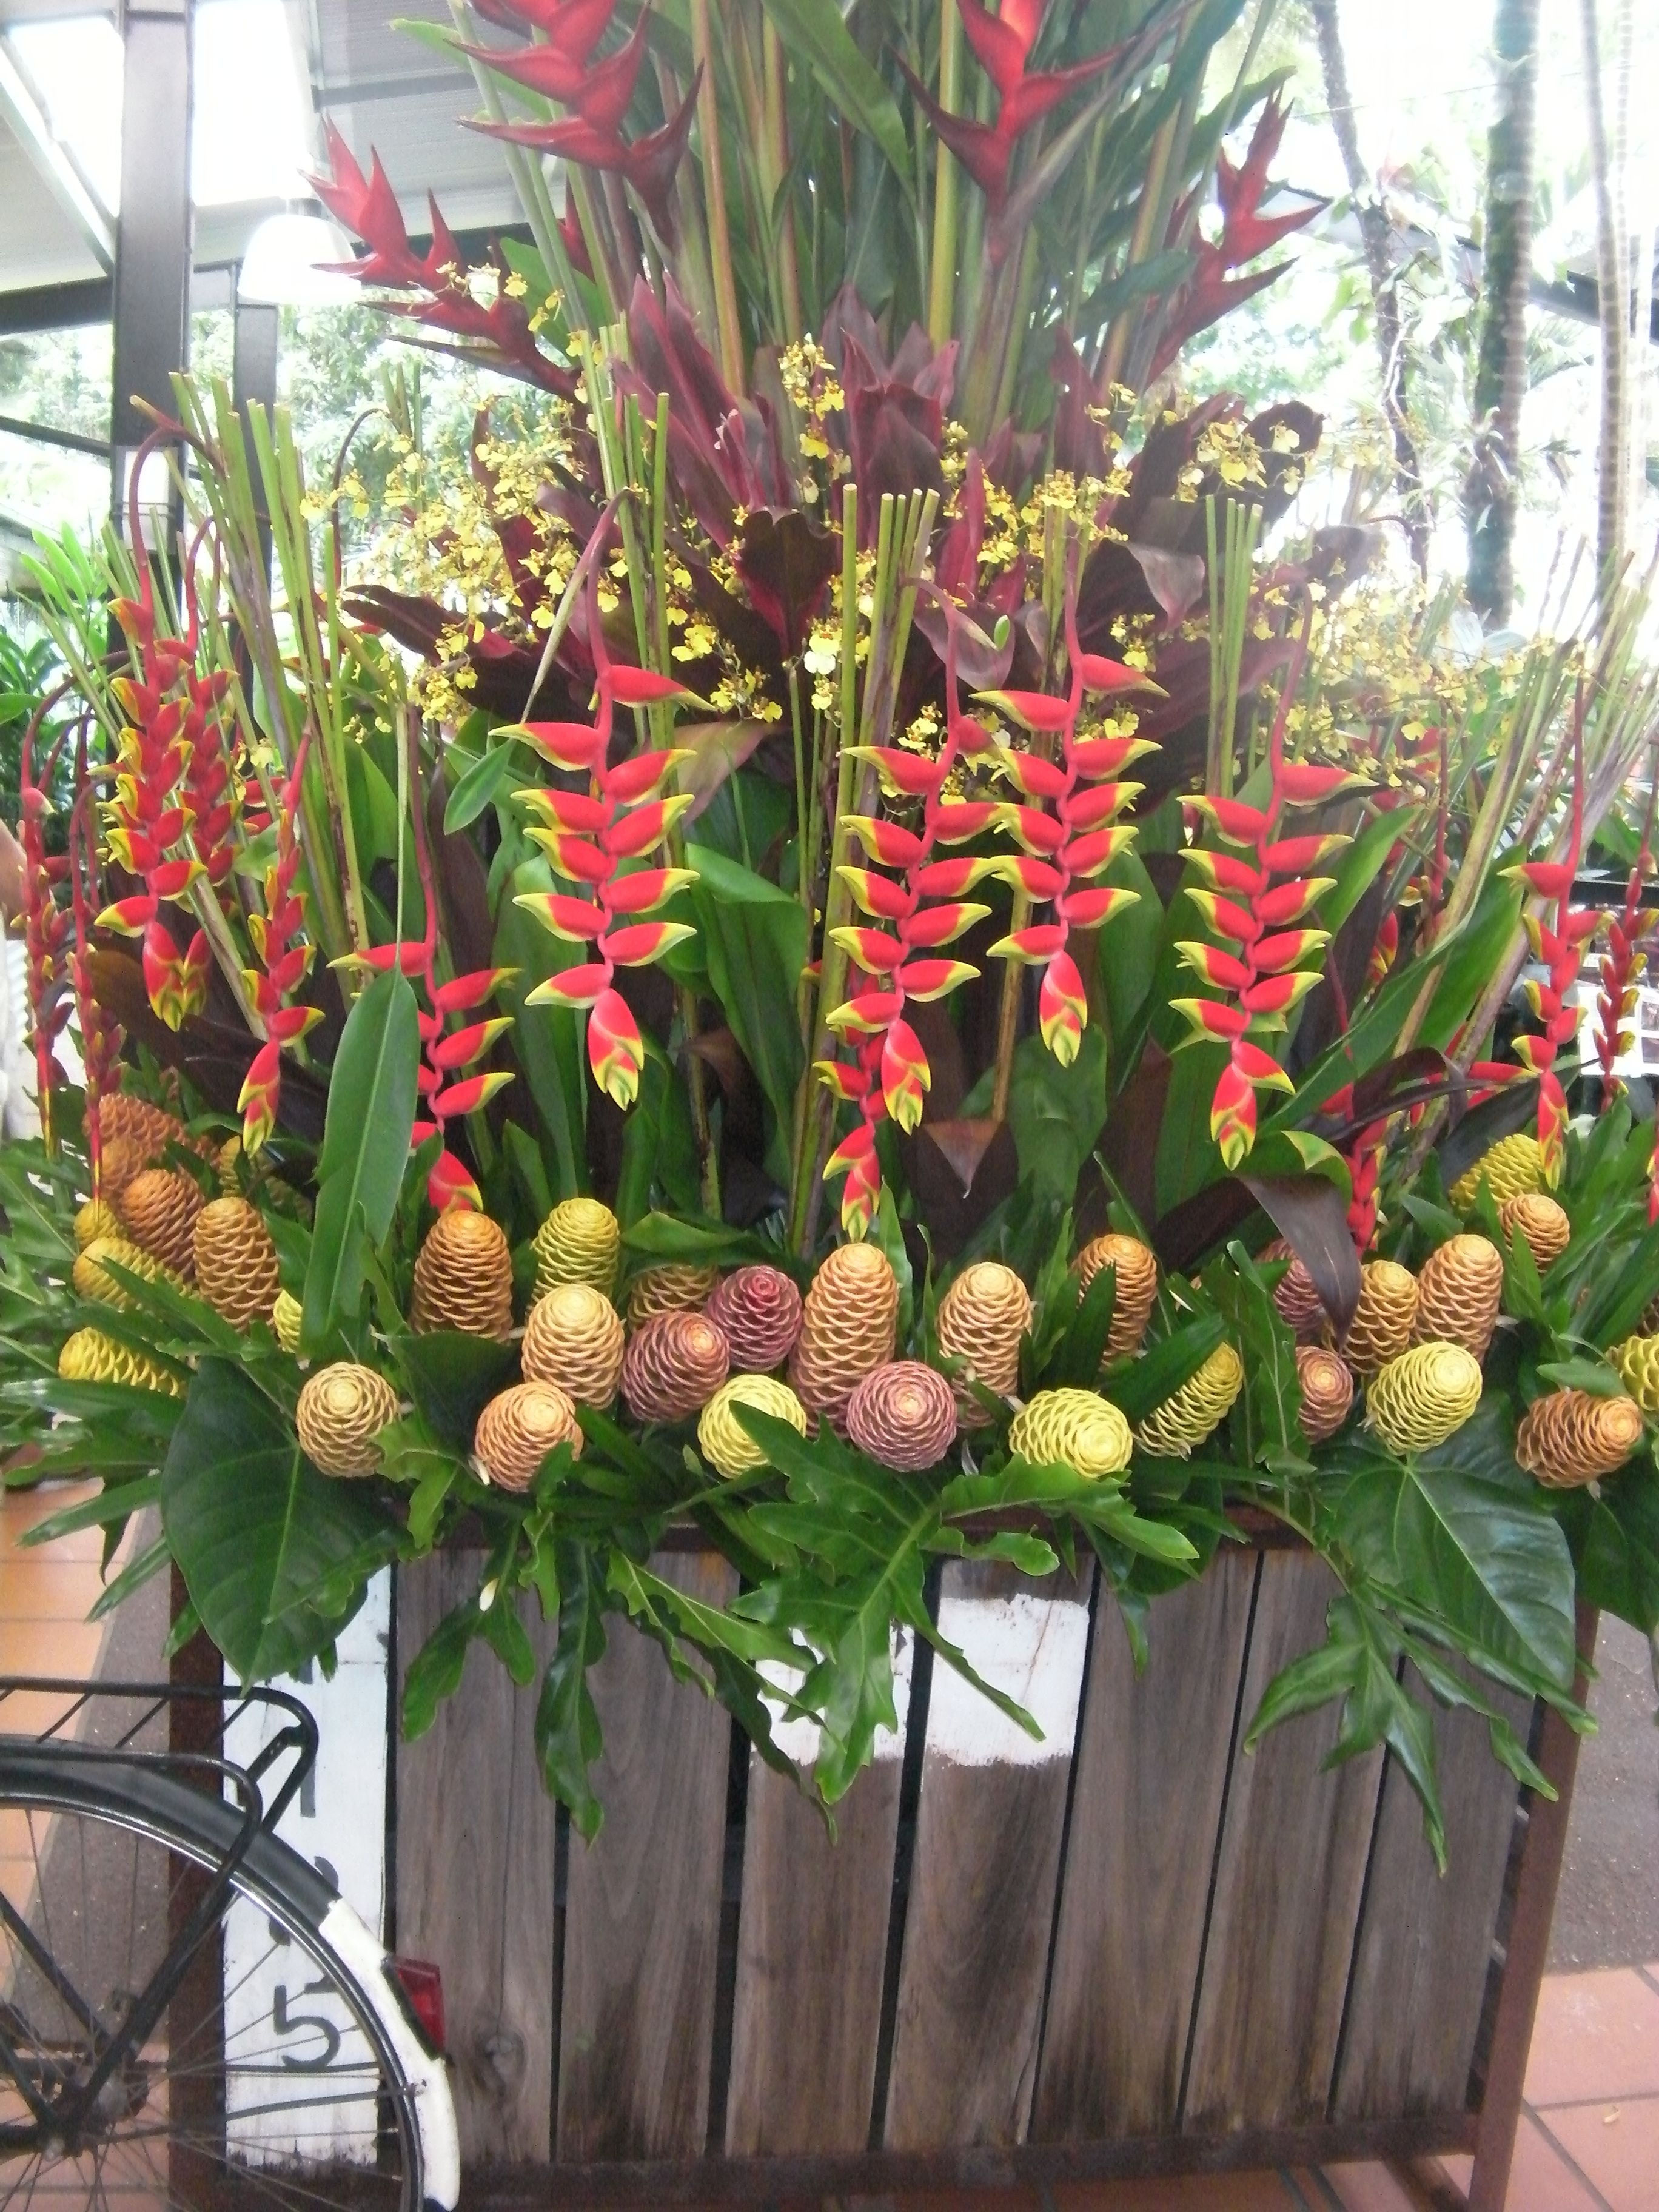 Yandina Ginger And Flower Festival Parrot Beak Heliconia And Bee Hive Gingers Heliconias